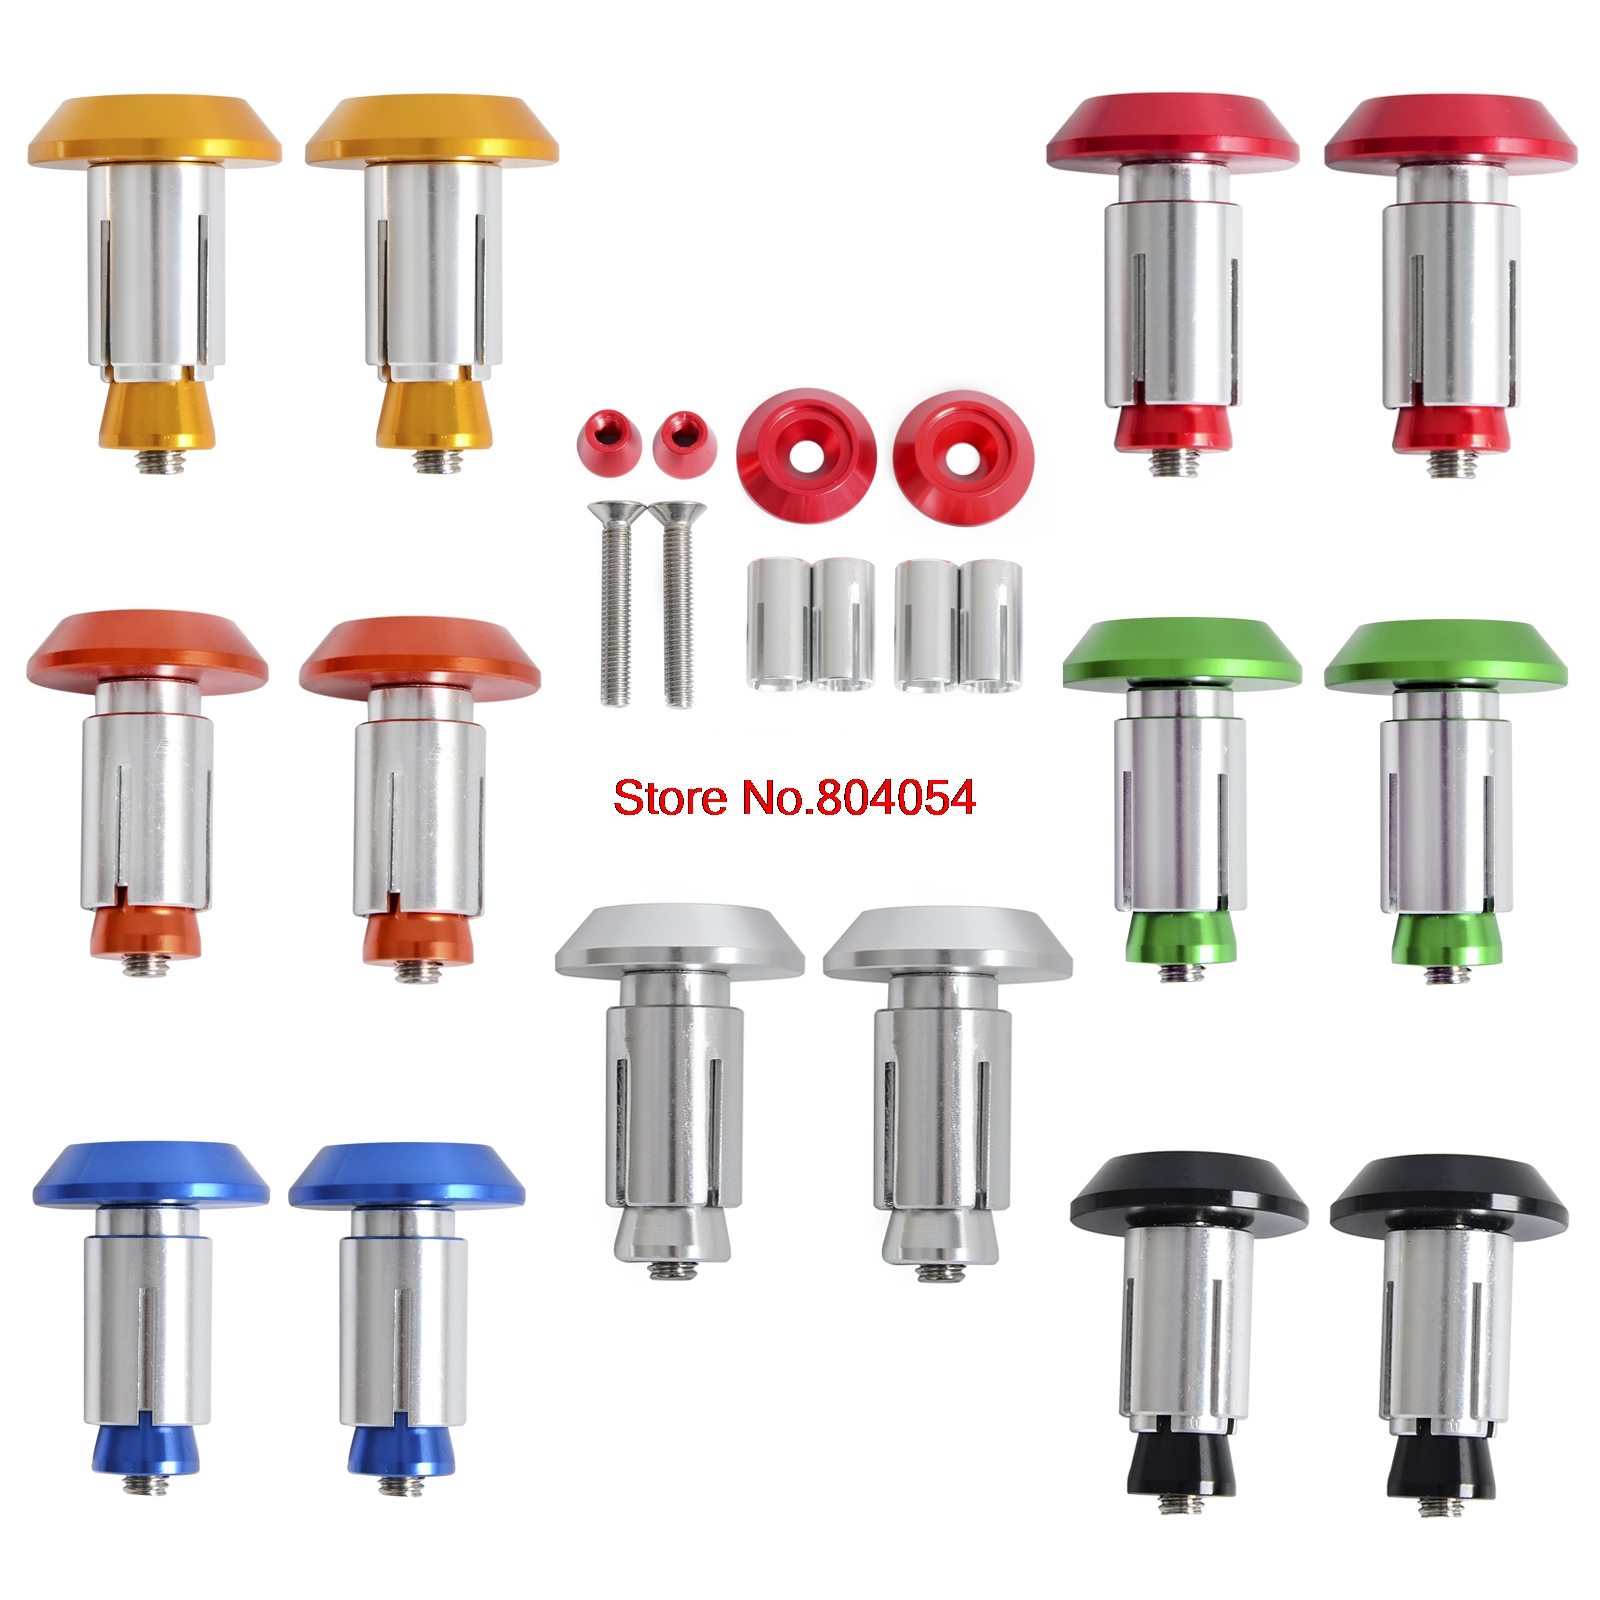 CNC Billet Handlebar Cap Plugs for Husaberg 125-570cc 2009-2014 Also Fit Husqvarna 125-501cc 2014-2016<br><br>Aliexpress